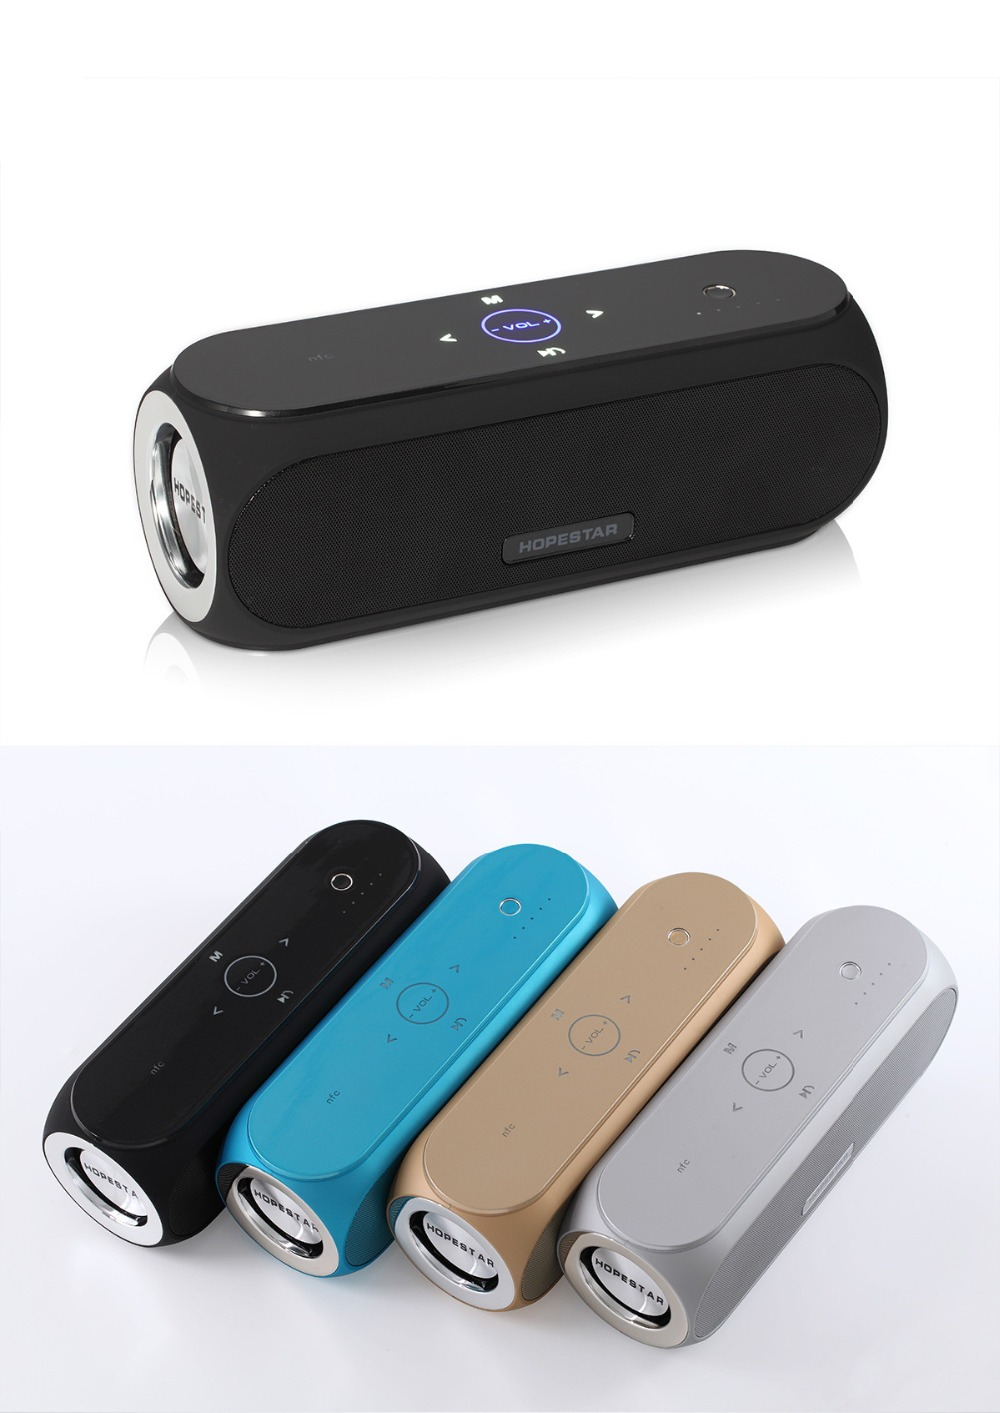 ФОТО 2017 New H9 Wireless Bluetooth Speaker Bass Sound System 3D Stereo Music Surround Support NFC TF card AUX USB For iPhone Android